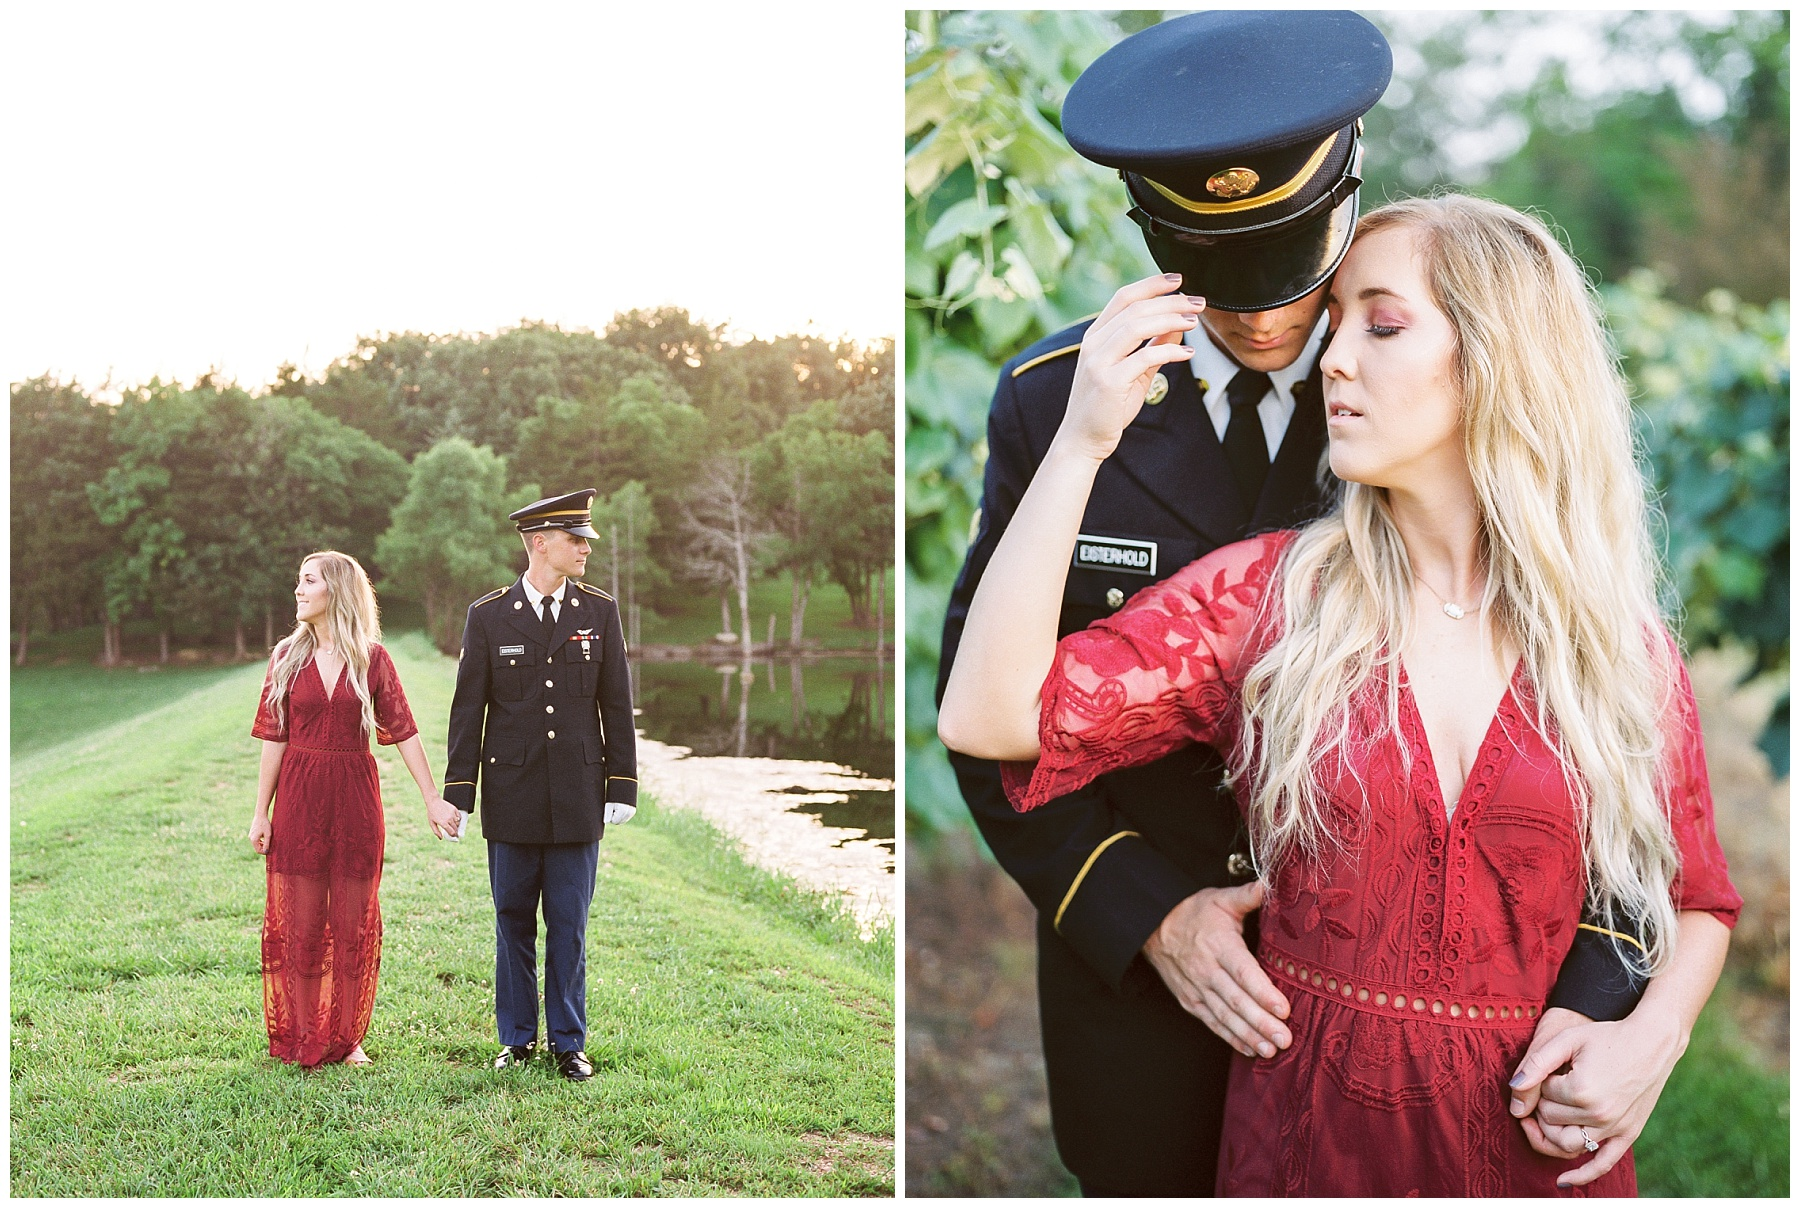 Golden Hour Summer Engagement Session at Lakeside Valley and Vineyards at Kempkers Back 40 by Kelsi Kliethermes Photography Best Missouri and Maui Wedding Photographer_0009.jpg